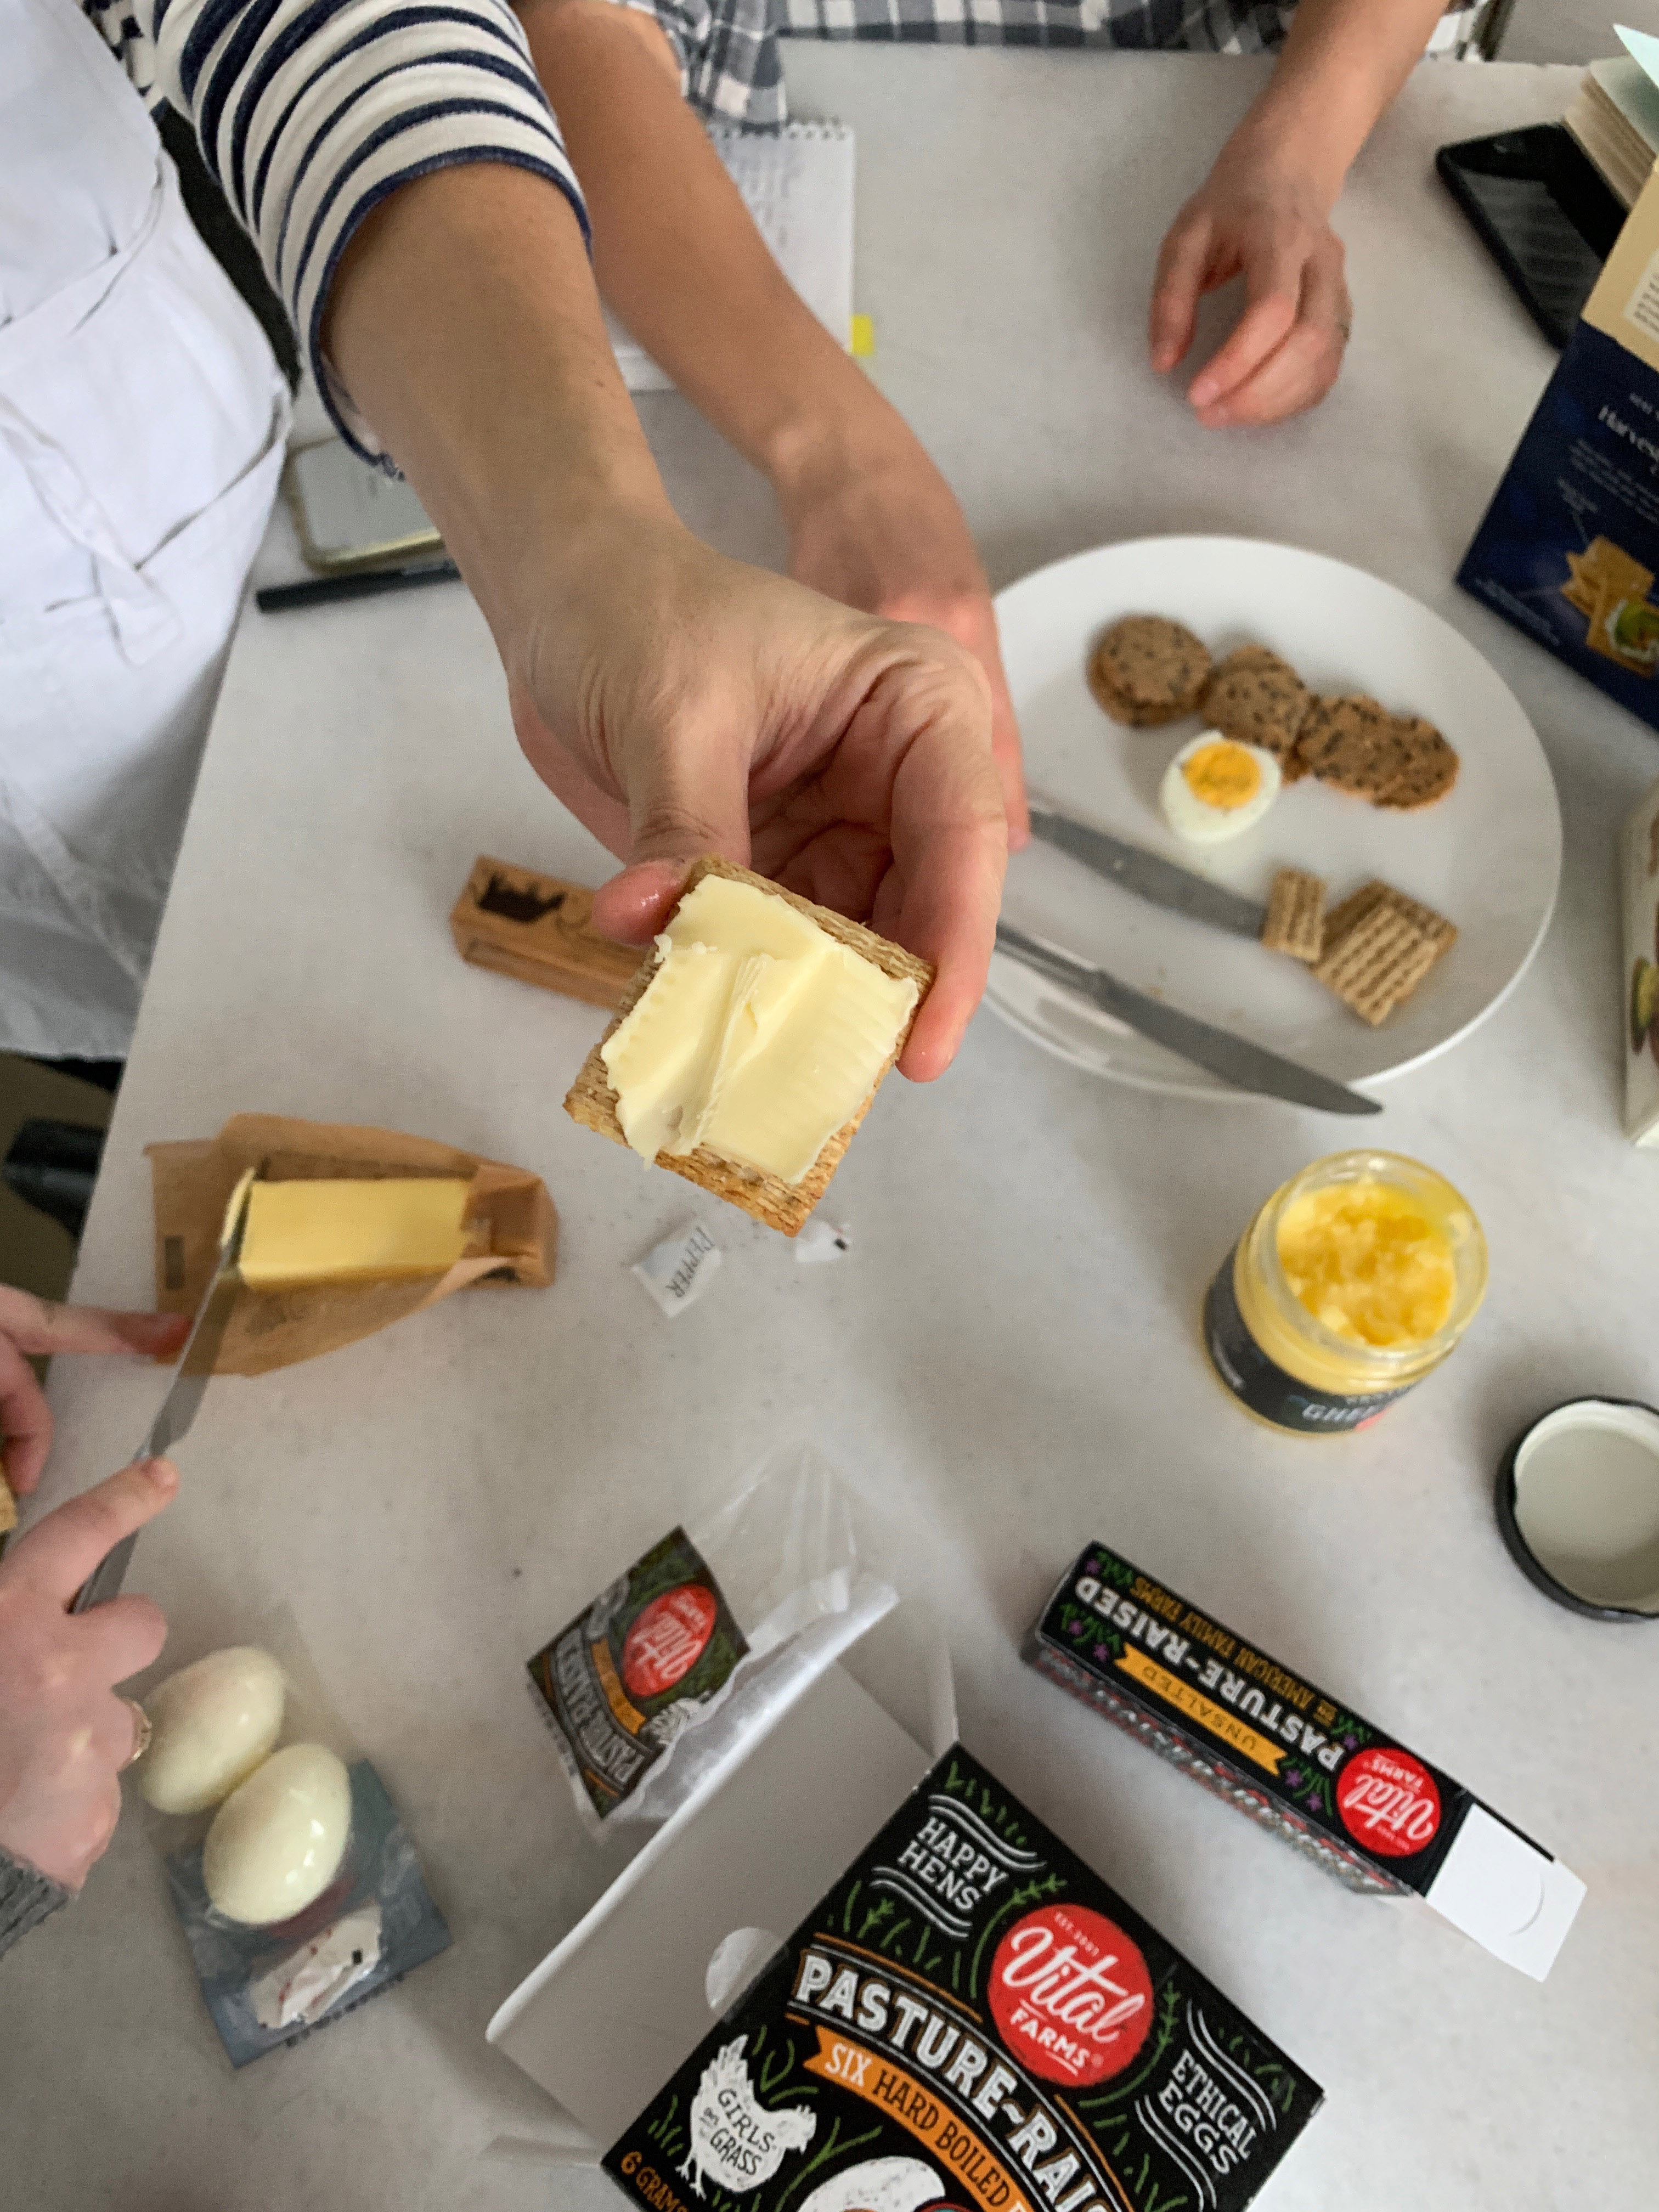 spreading butter on crackers